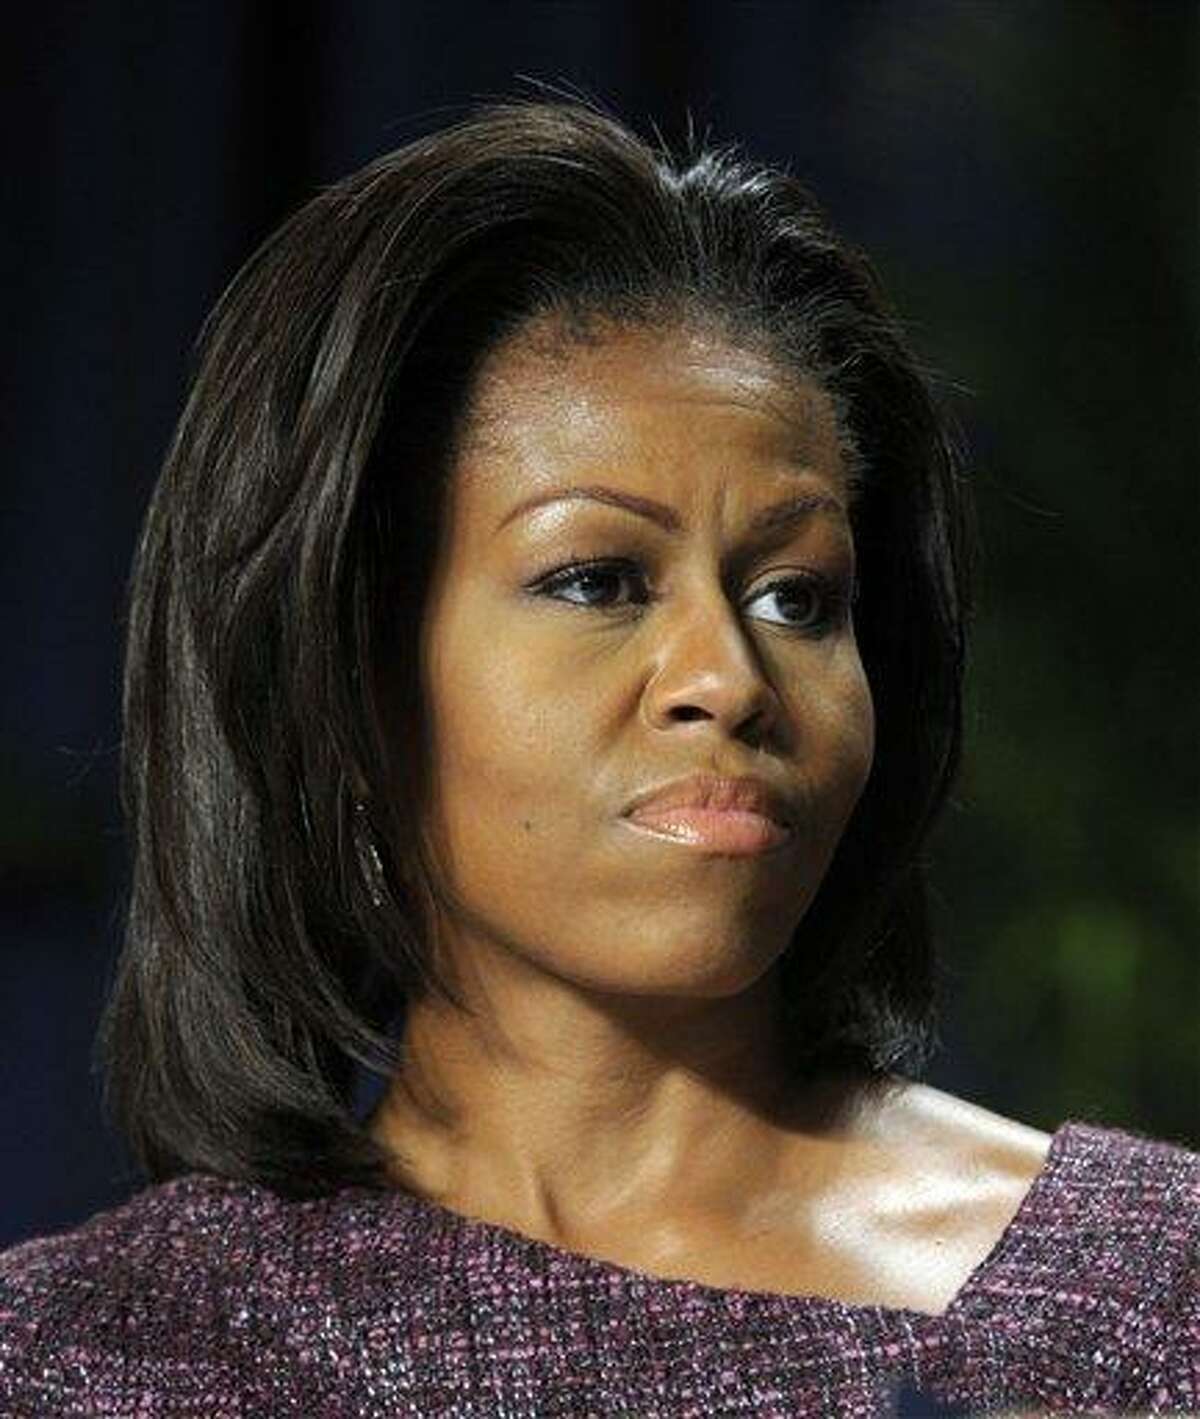 First Lady Michelle Obama attends the National Prayer Breakfast in Washington Thursday. Associated Press